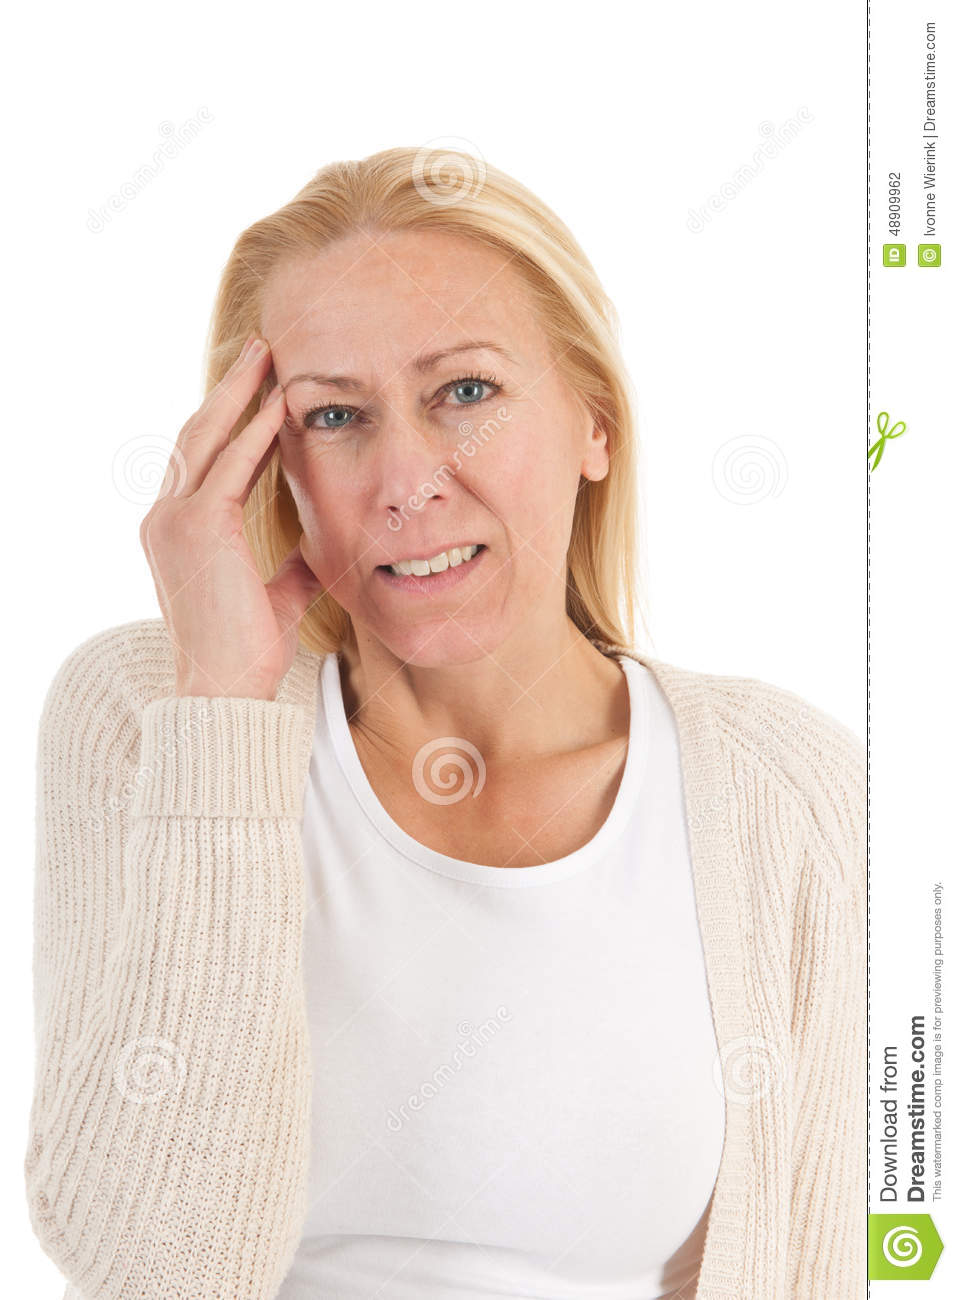 Woman Of Mature Age With Headache Stock Photo Image Of Mature